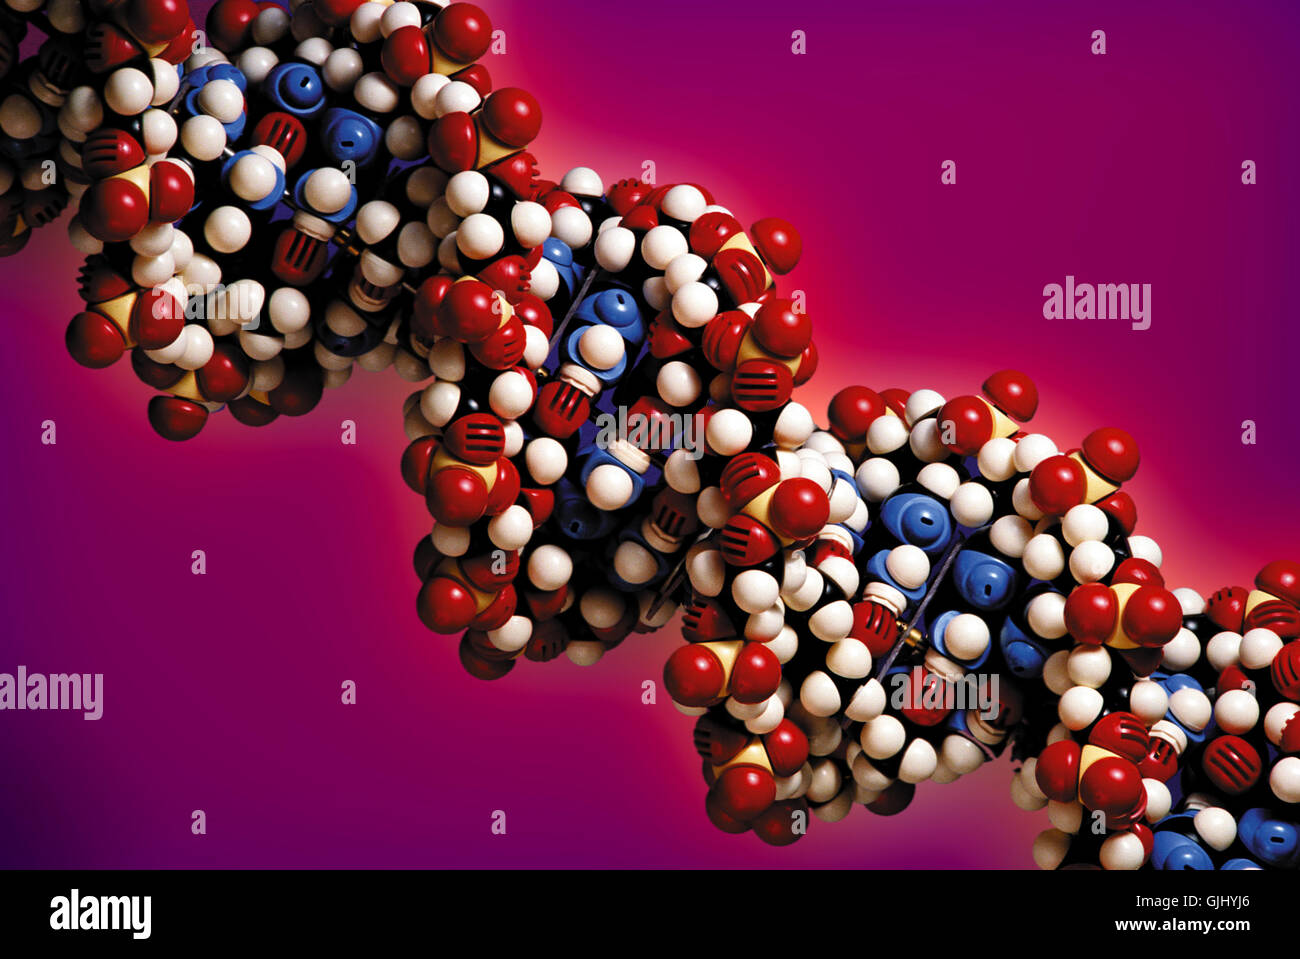 research cell nucleus medicine - Stock Image